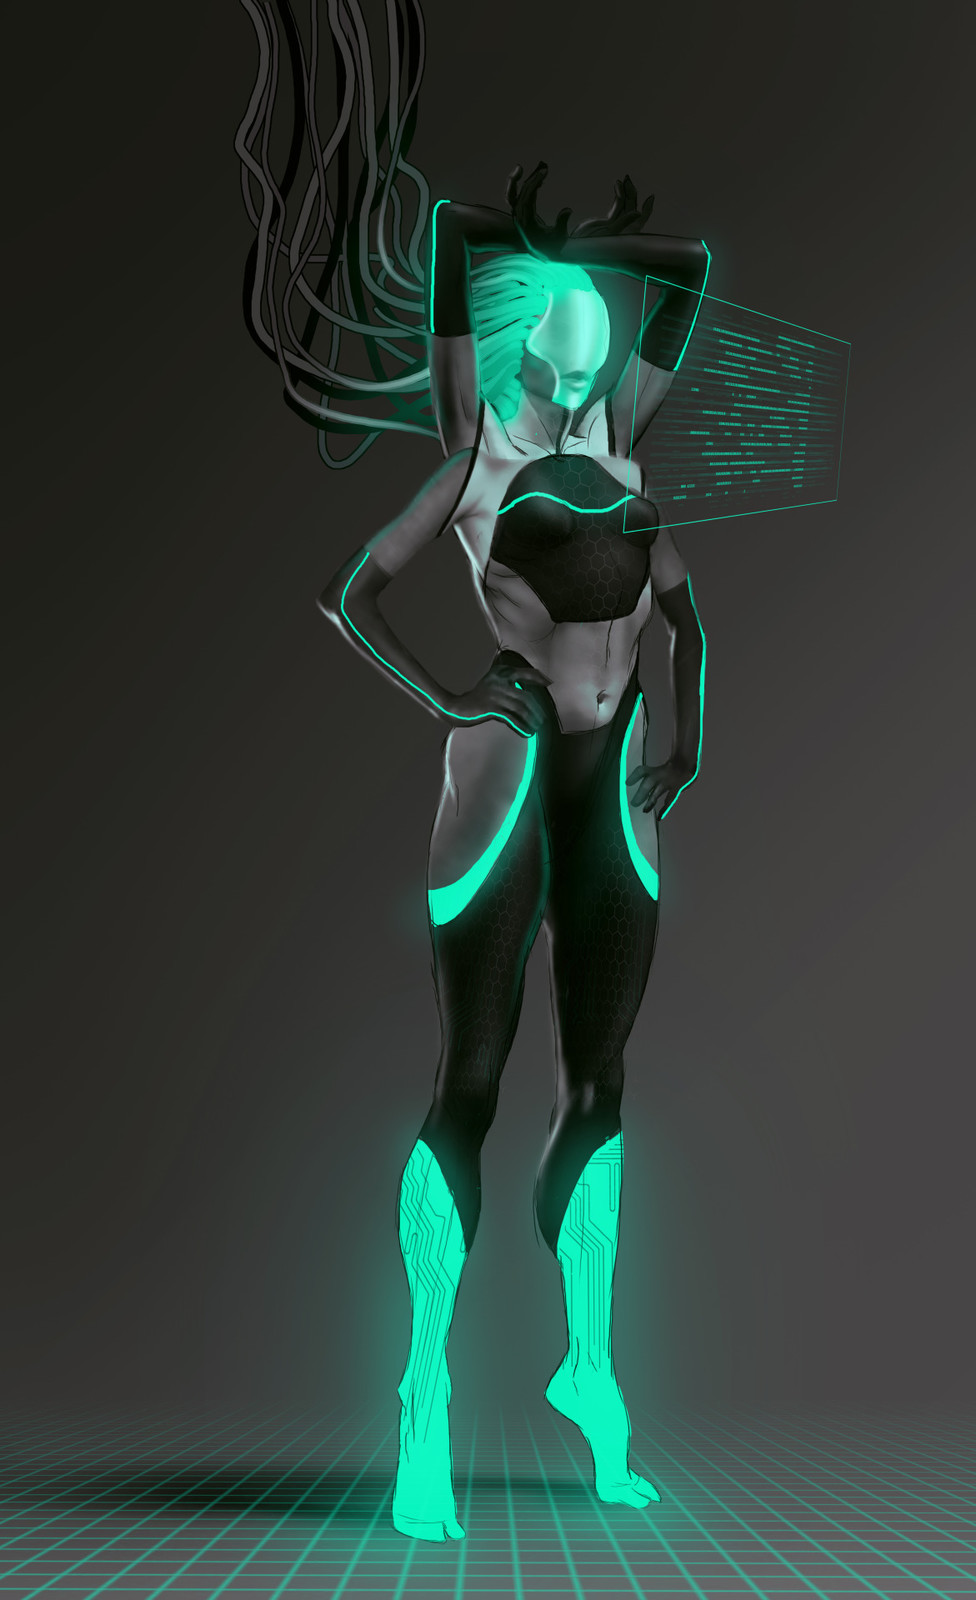 Assignment was a Sci-Fi character